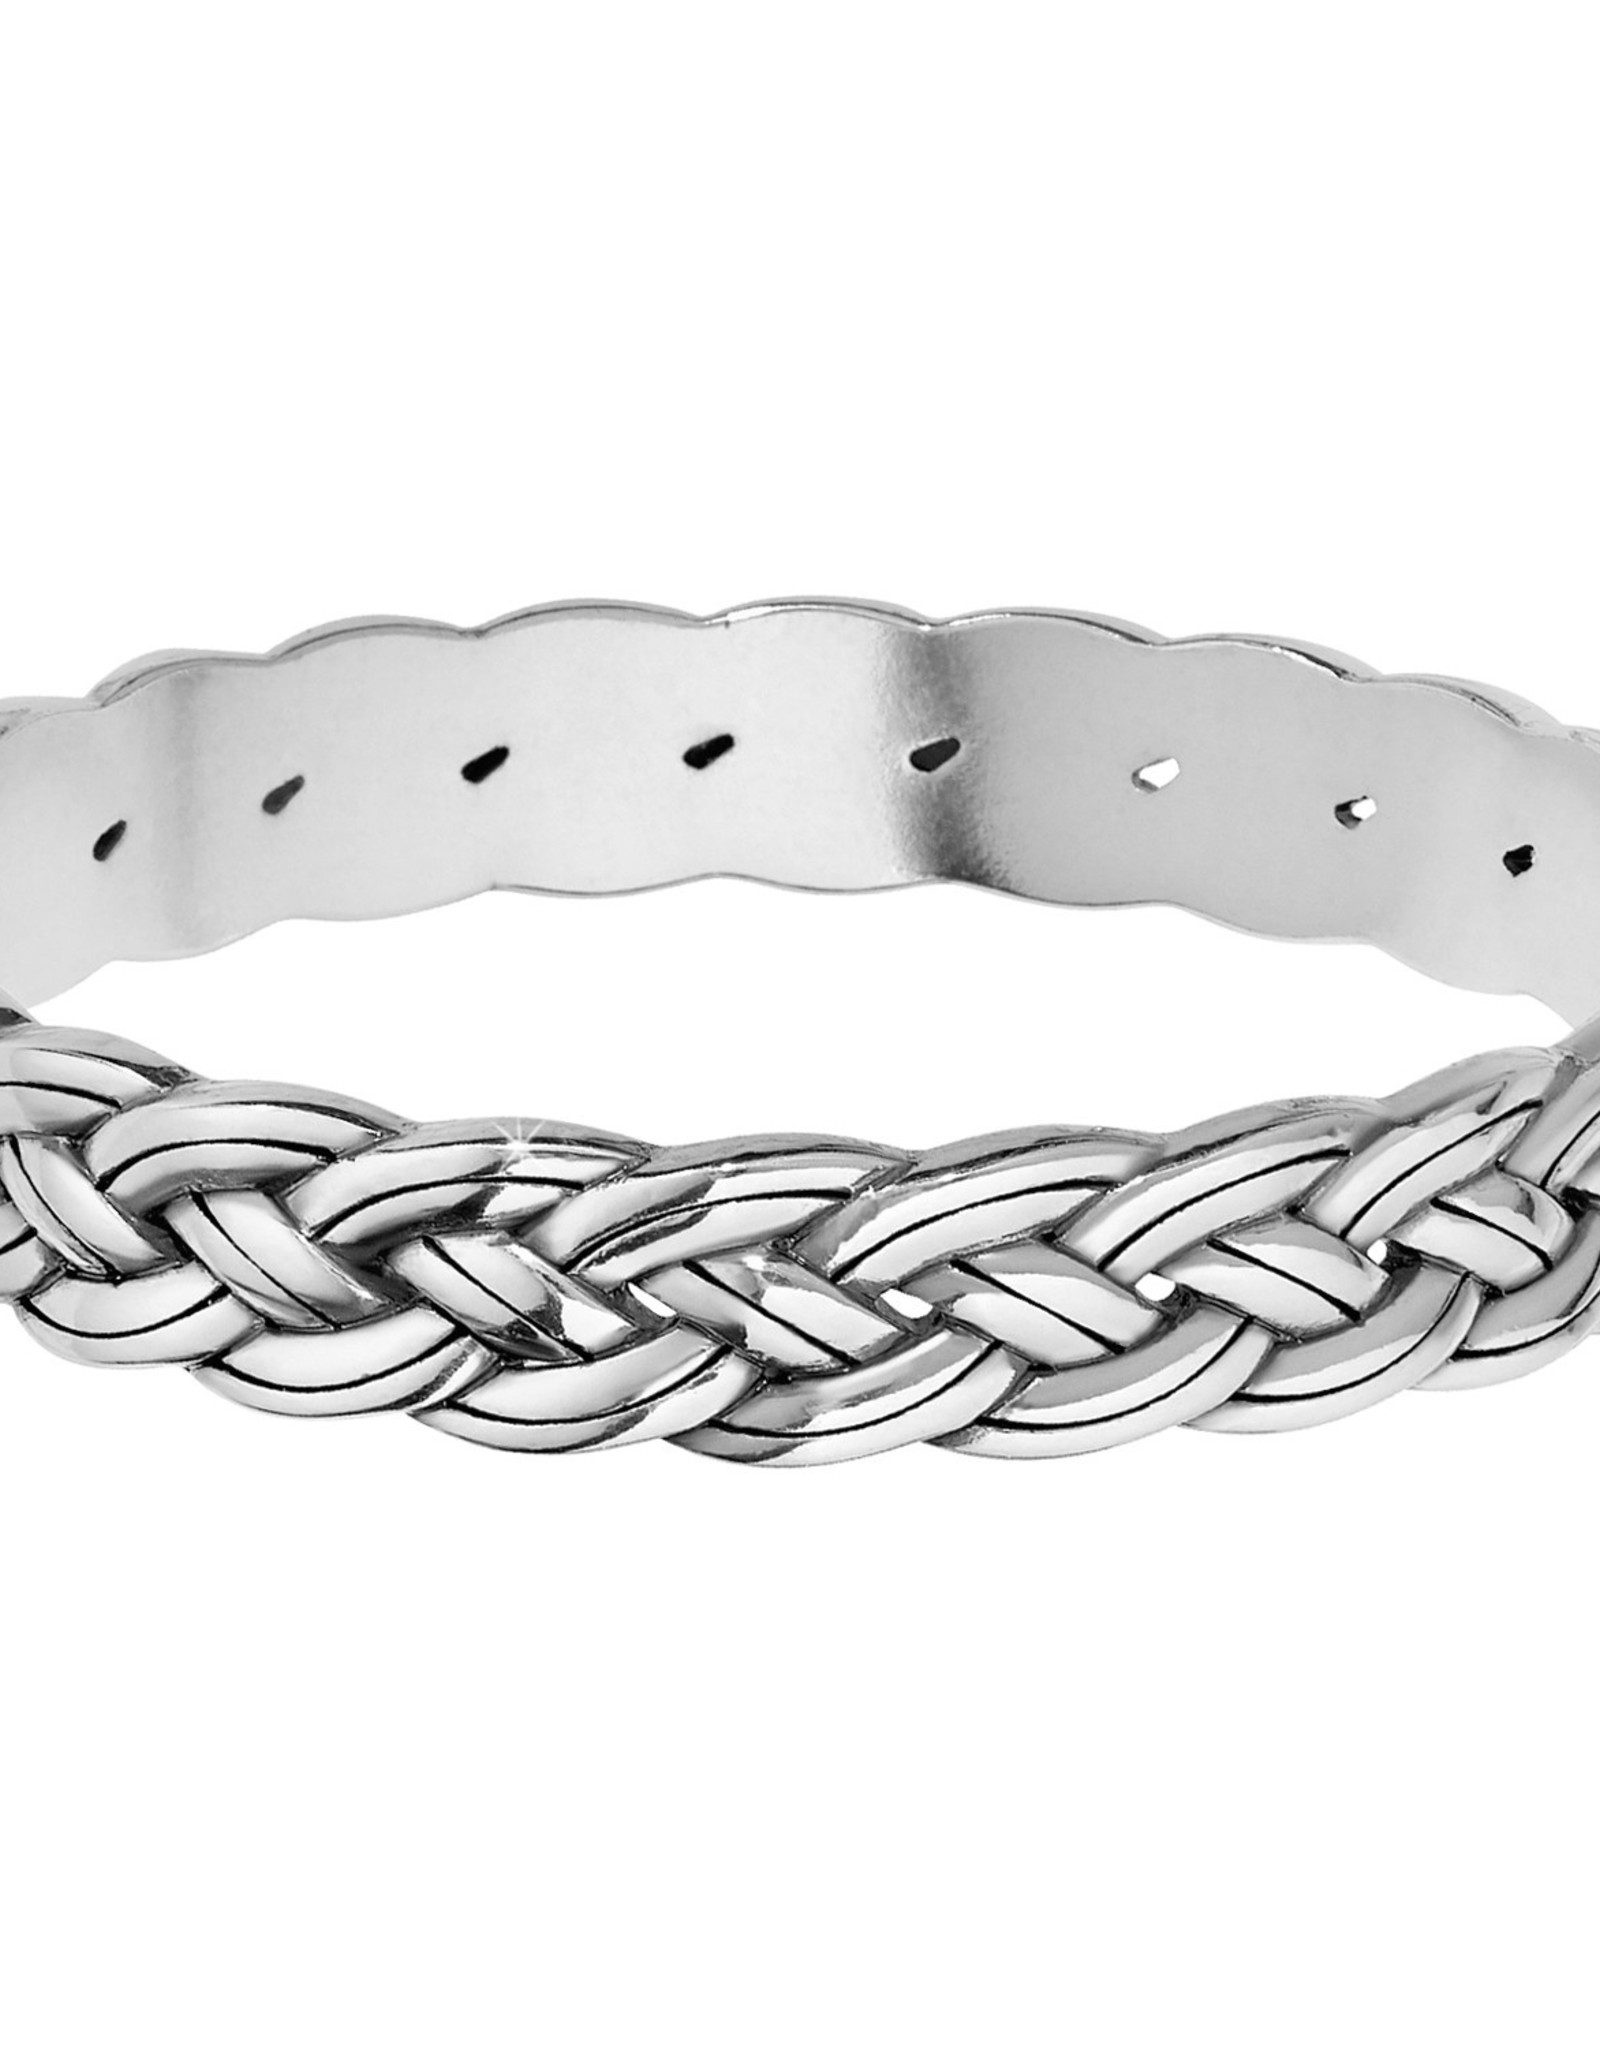 Brighton Brighton Bracelet Interlok Woven Bangle